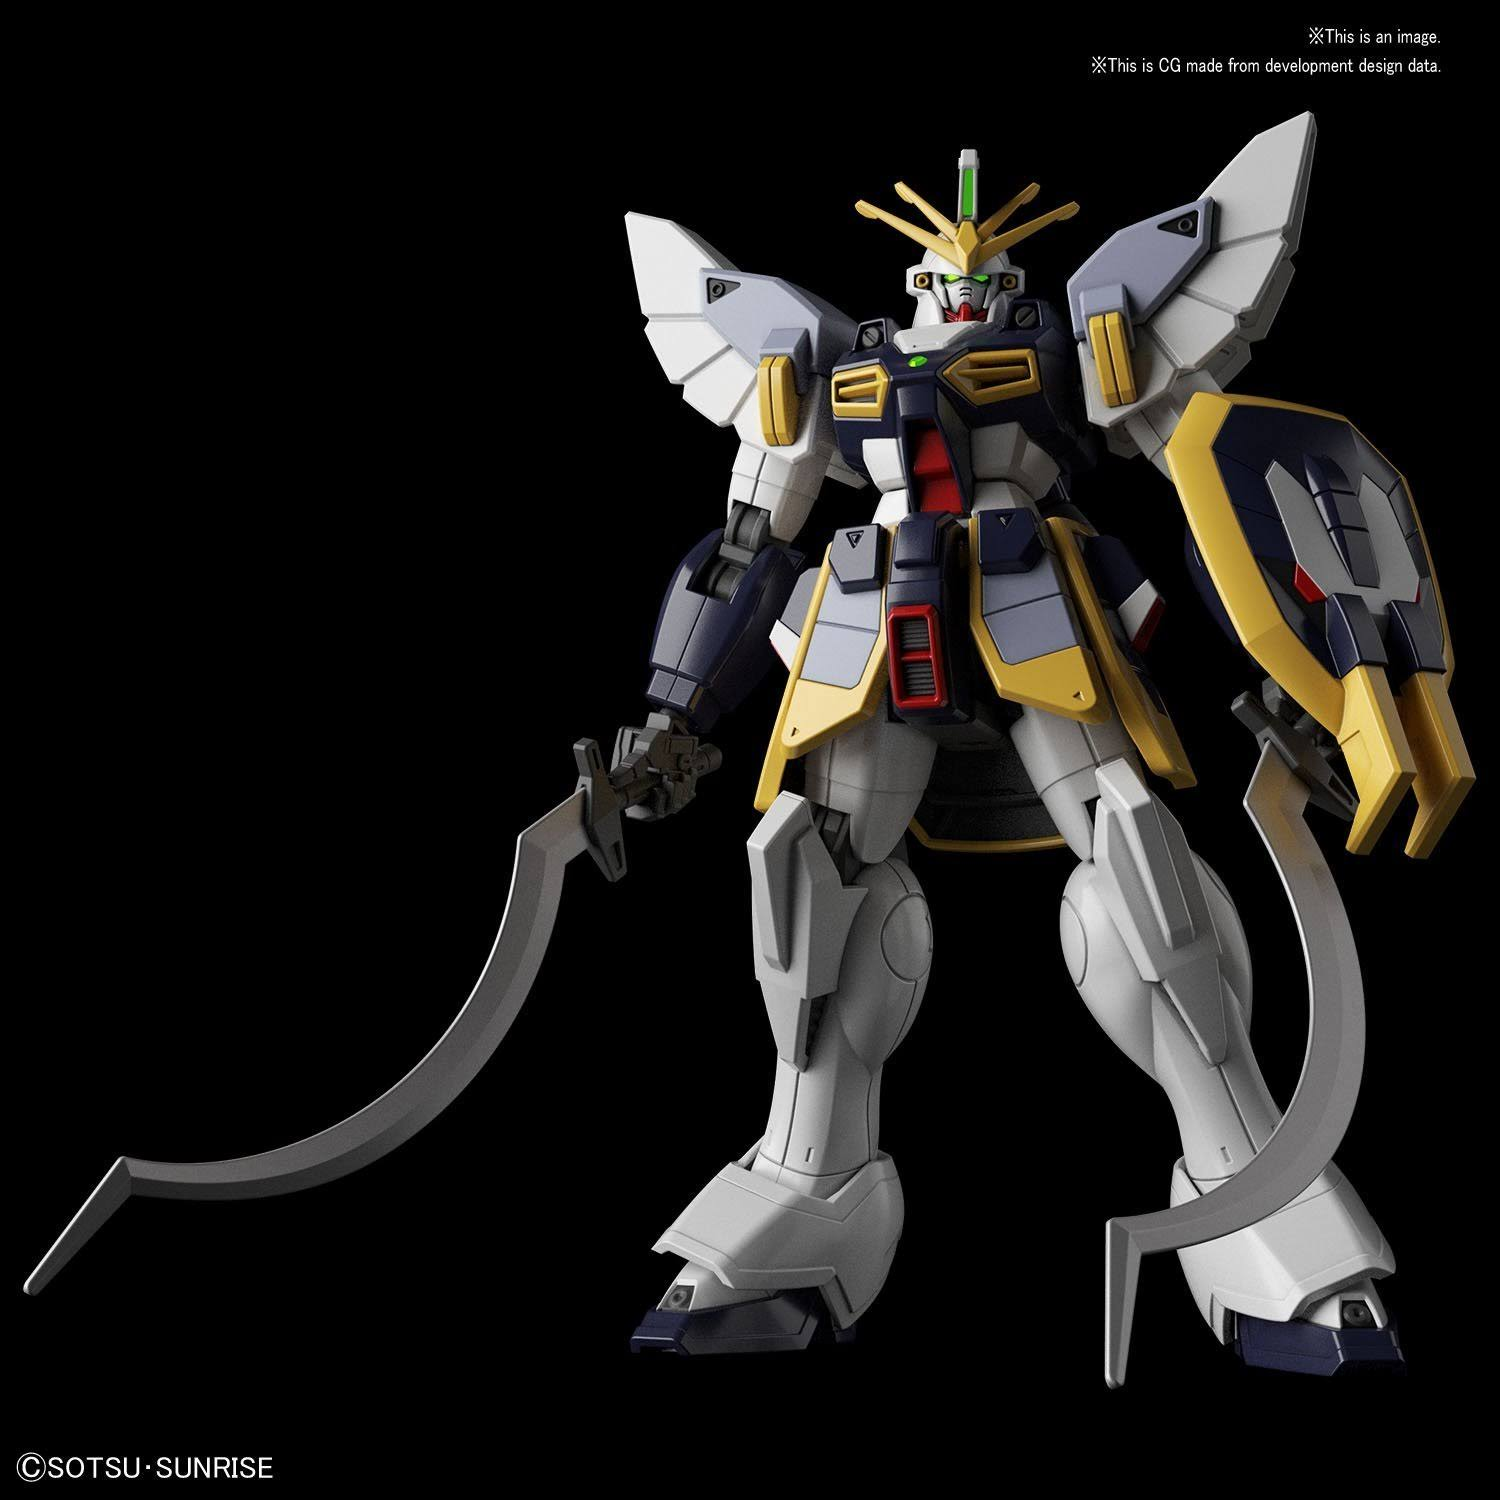 Bandai Gundam Sandrock Colonies Liberation Model Kit - Scale 1:144